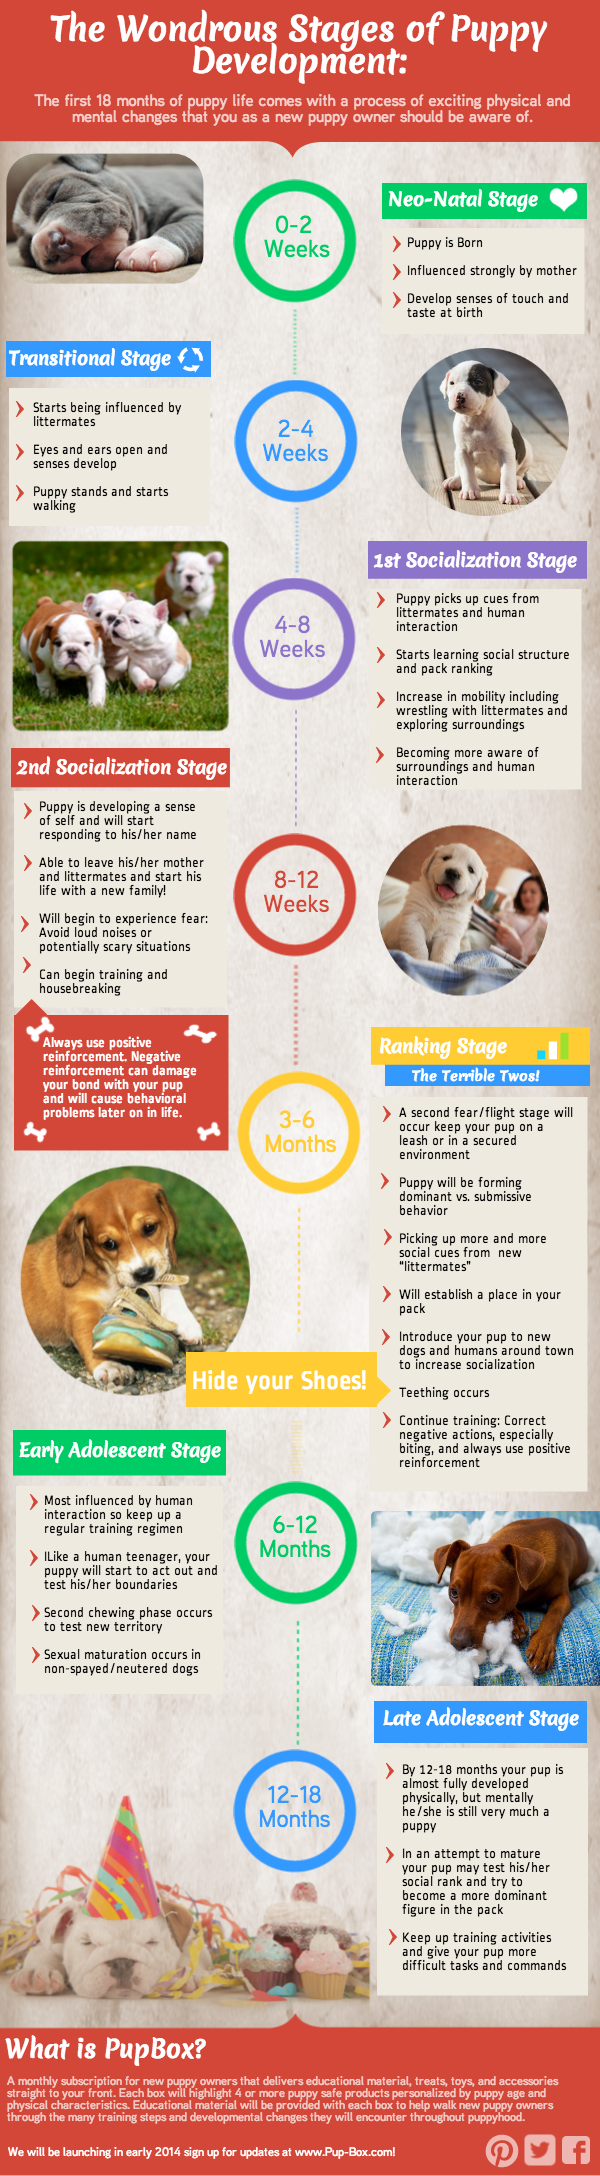 The Wondrous Stages Of Puppy Development Infographic Puppy Development Puppies Puppy Training